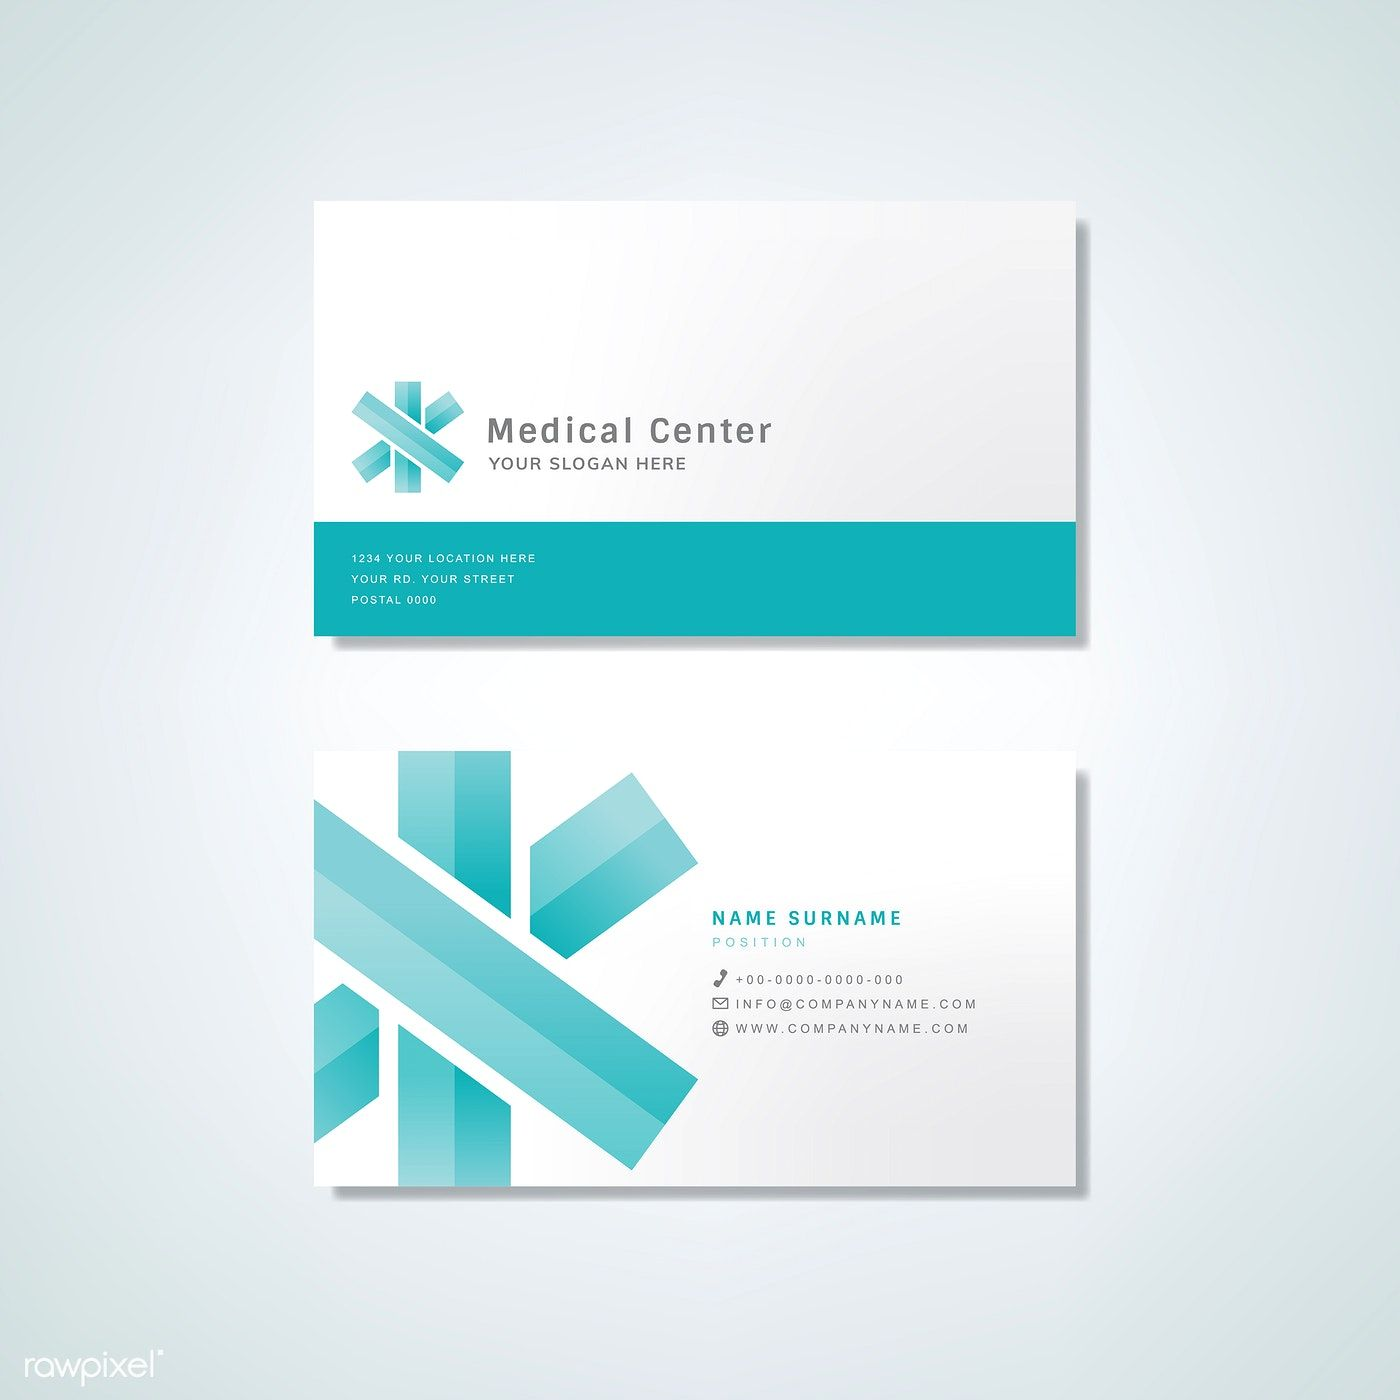 Medical Professional Business Card Design Mockup Free Image By Rawpixel Com Professional Business Card Design Medical Business Card Business Card Design